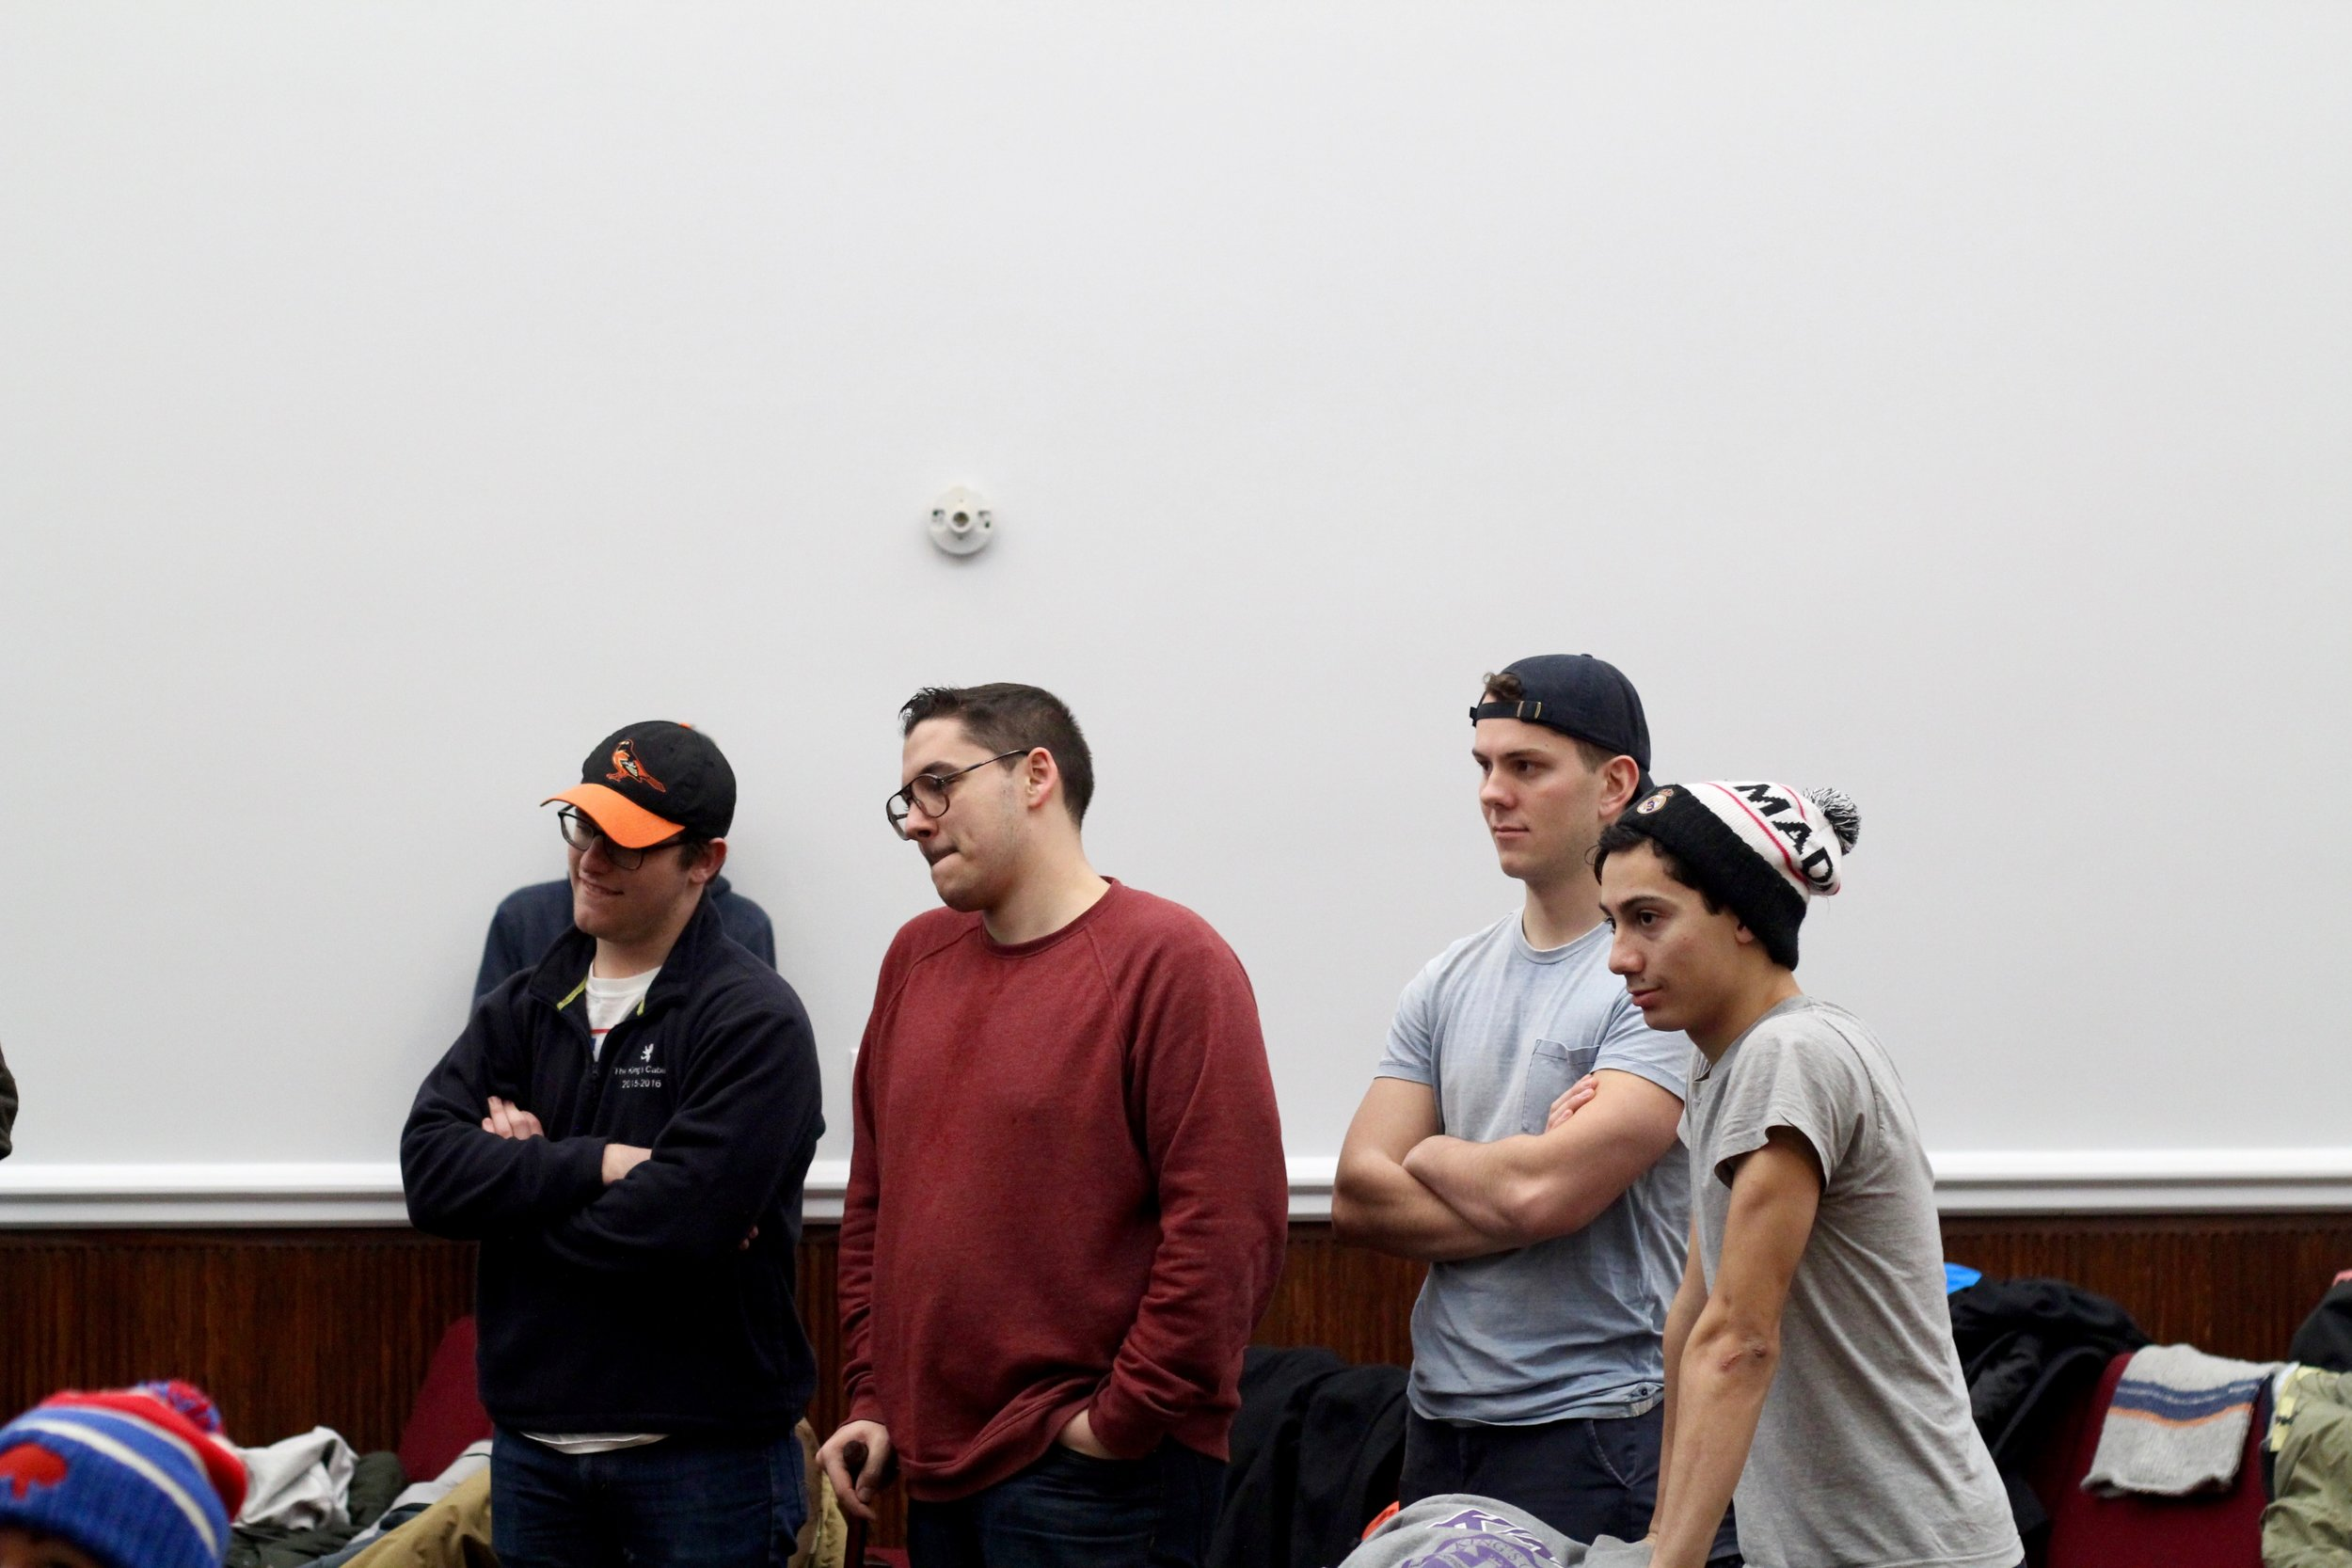 (From left to right) Reese Evans ('16), Fisher Derderian ('16), Jesse Inman ('16) and Matt Contreras ('17) listening to instructions at Manor Community Church. Photo by Taylor Thompson.